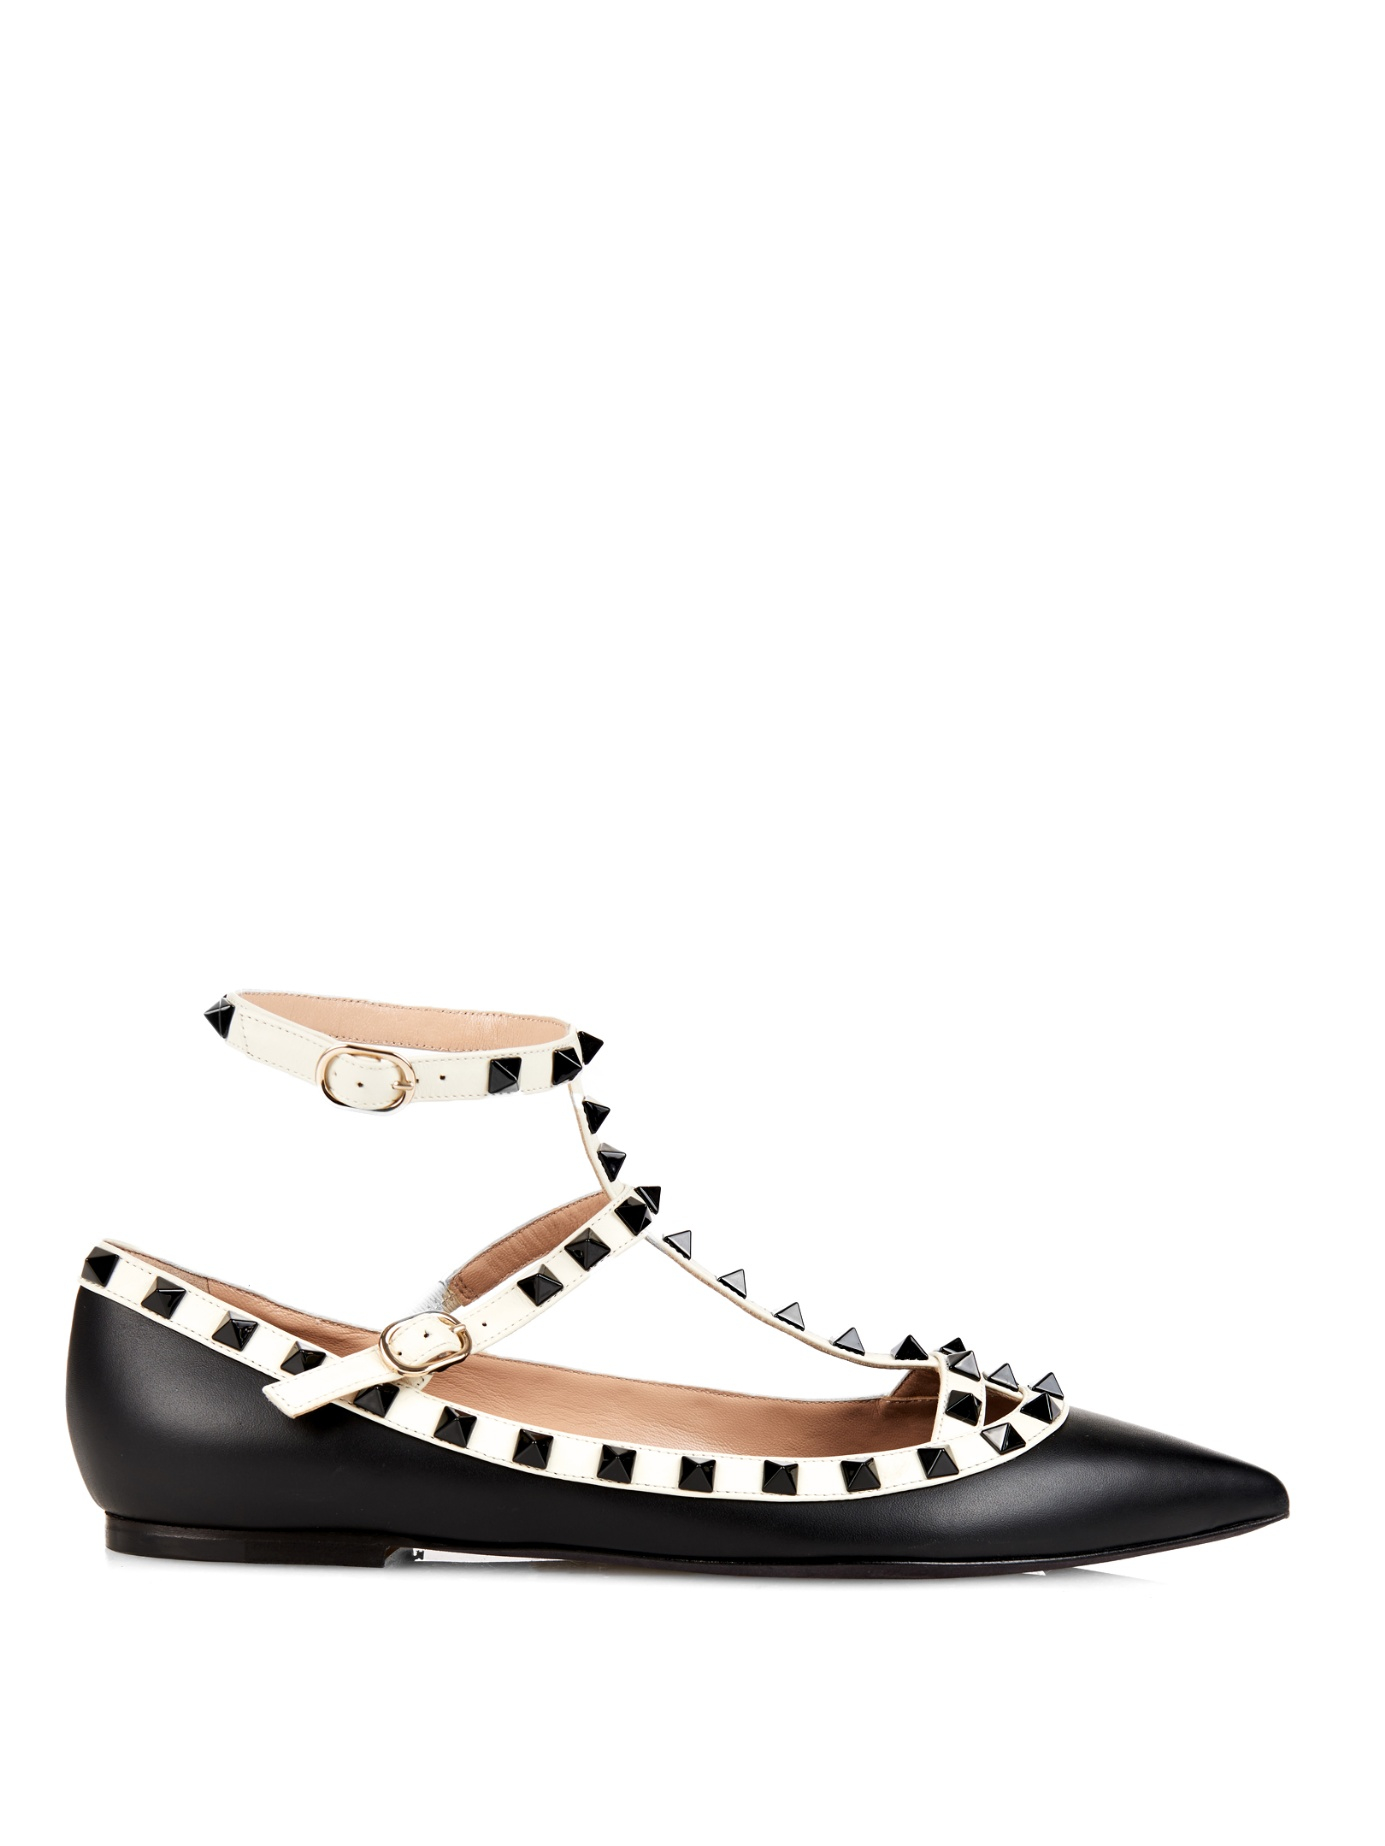 valentino rockstud pointed toe leather flats in black lyst